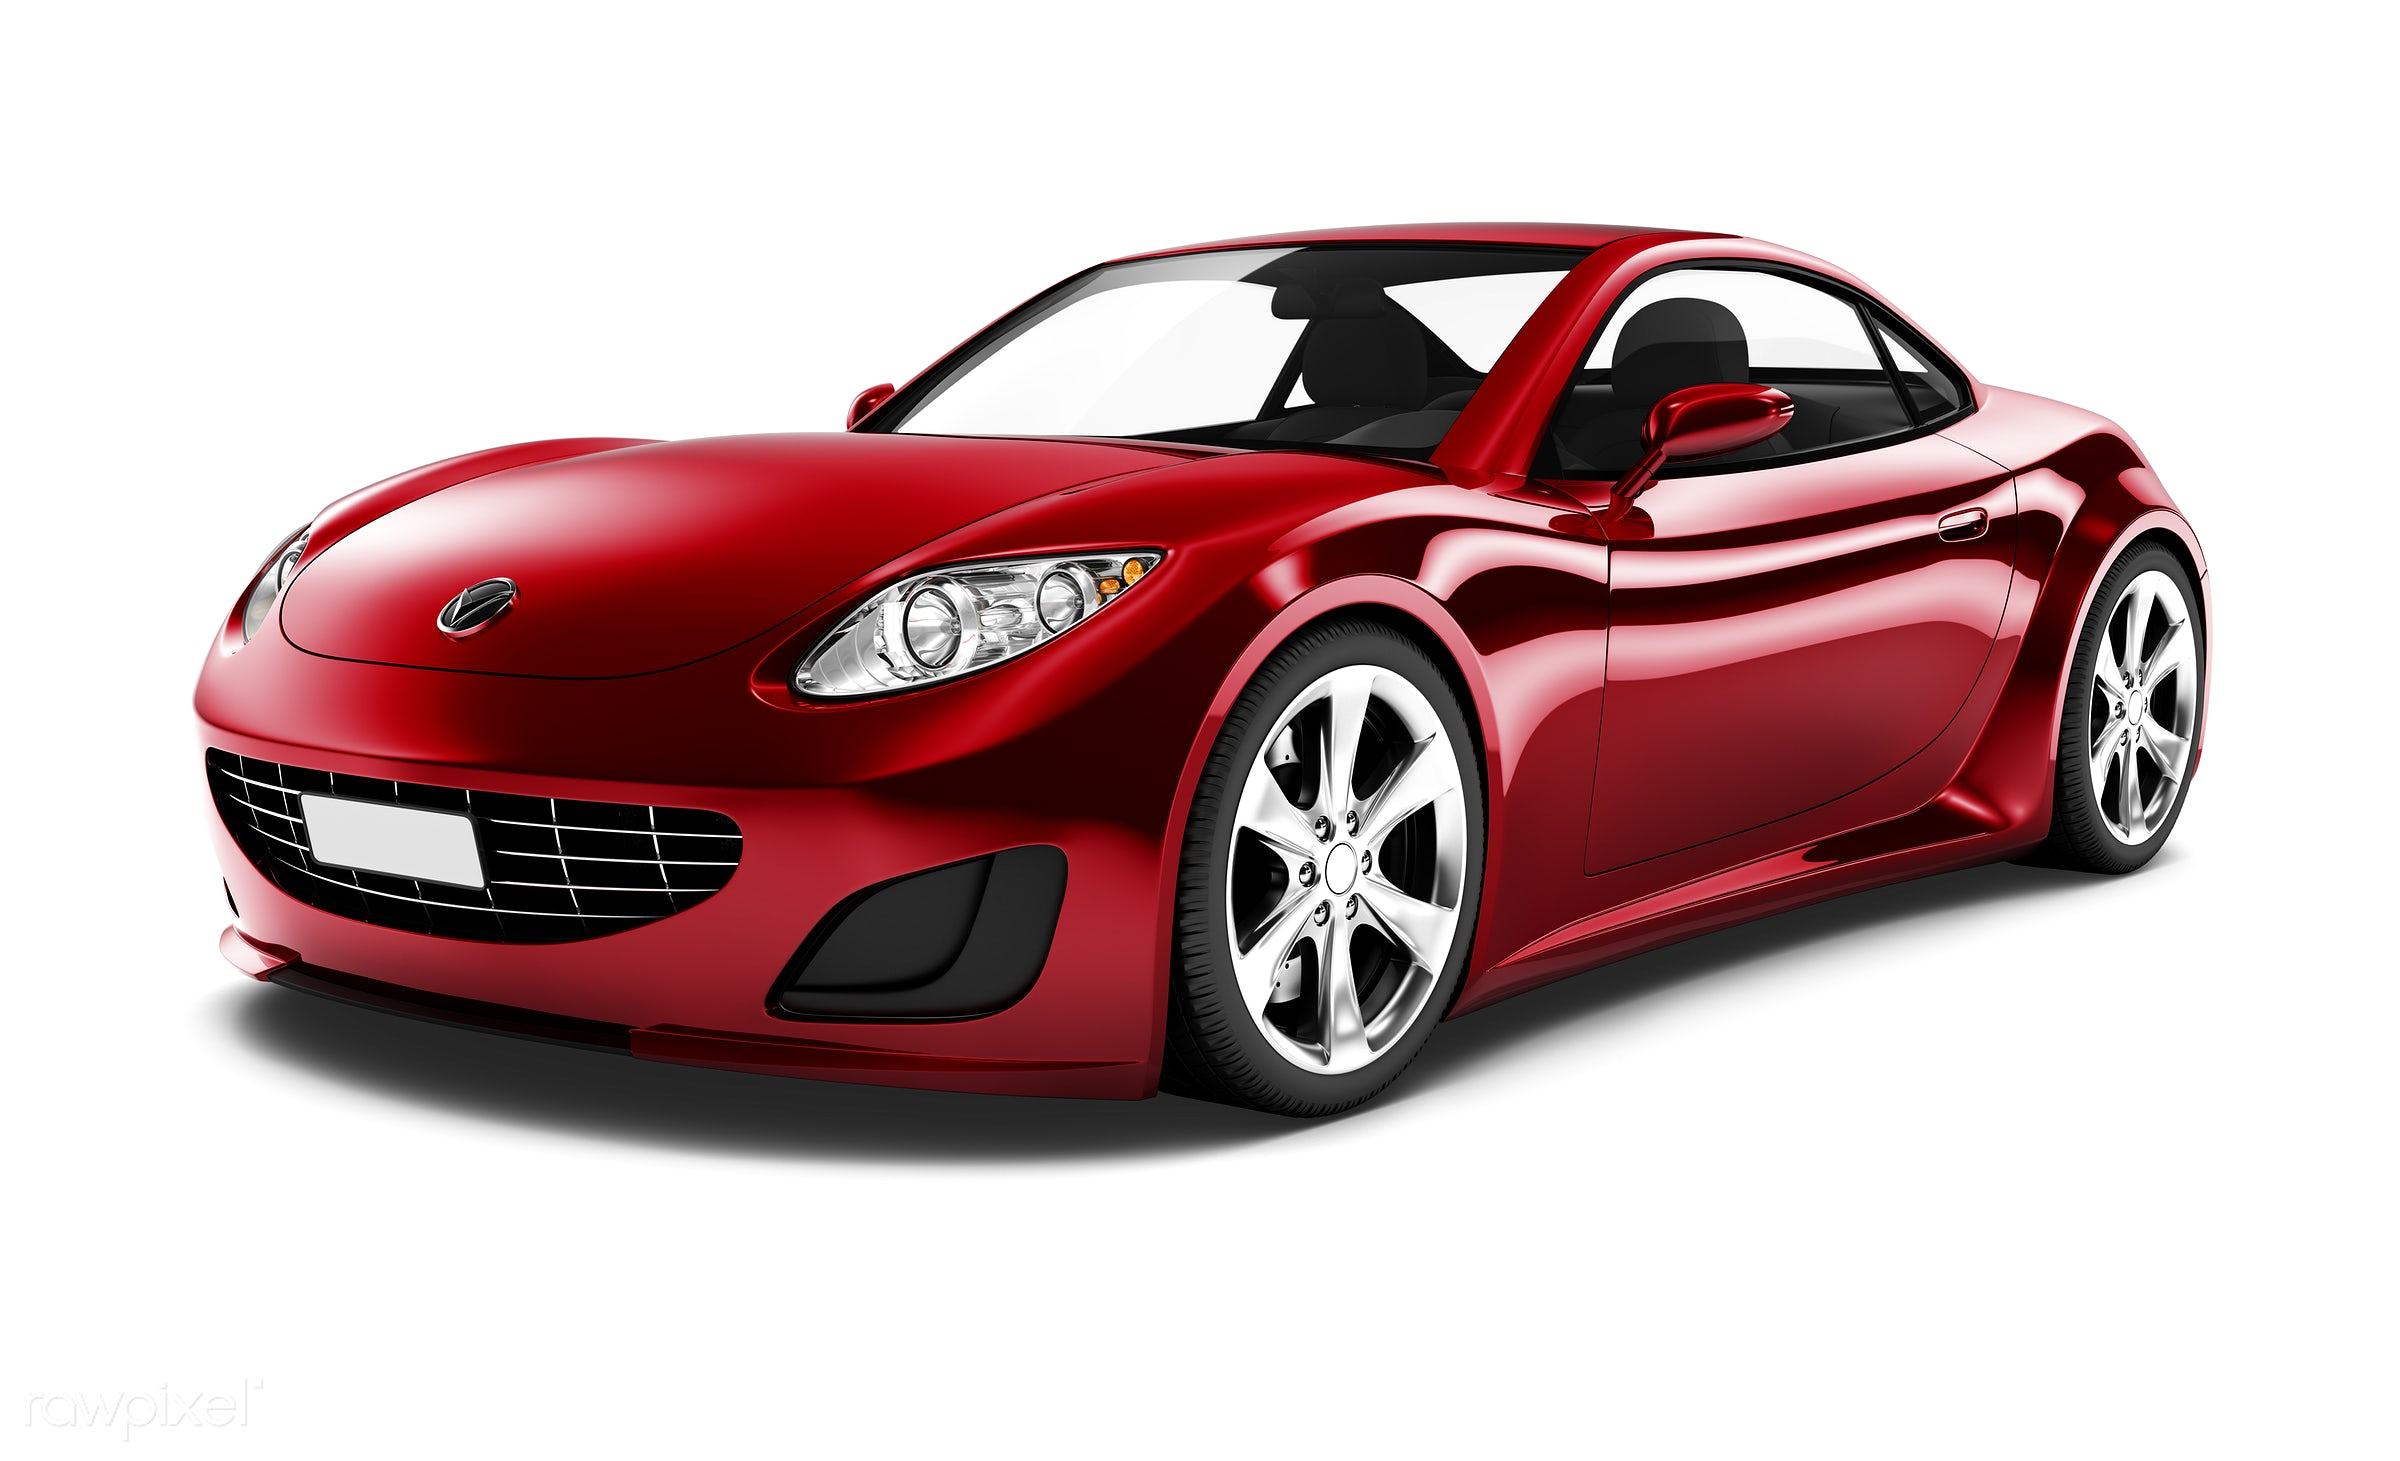 Three dimensional image of red car - 3d, automobile, automotive, brandless, car, concept car, elegant, graphic, holiday,...